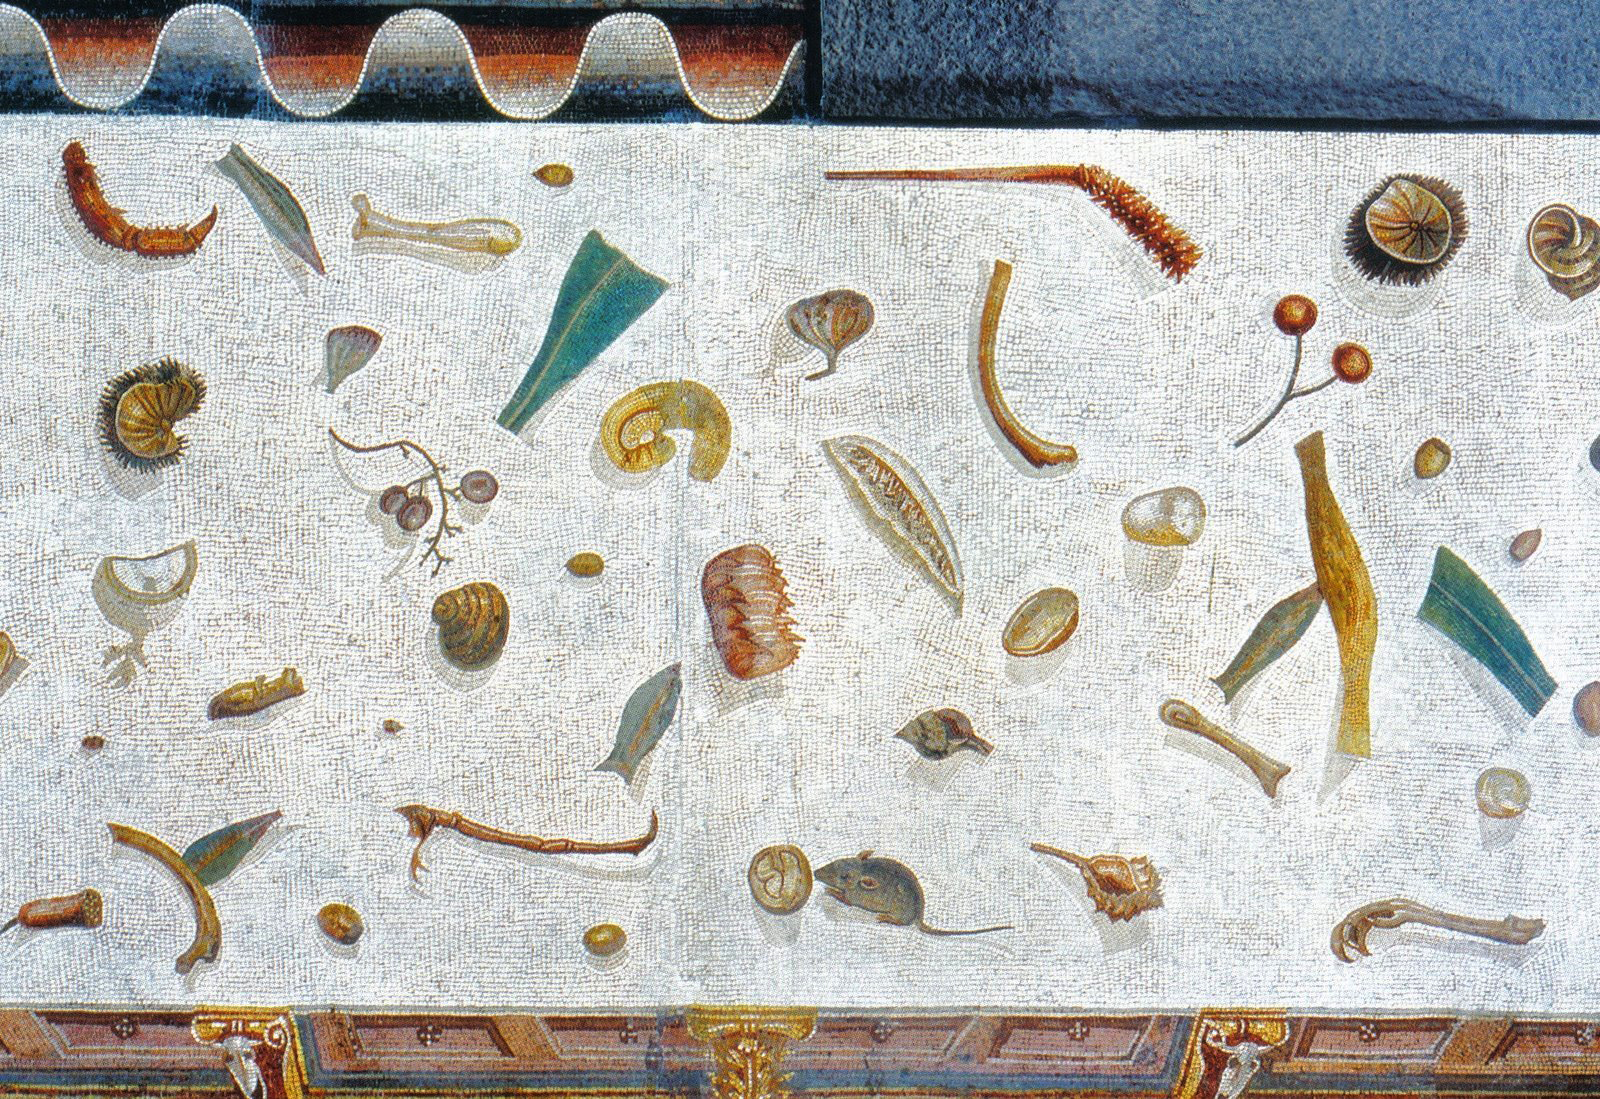 Roman Mosaic depicting foodstuff that has been dropped on the floor